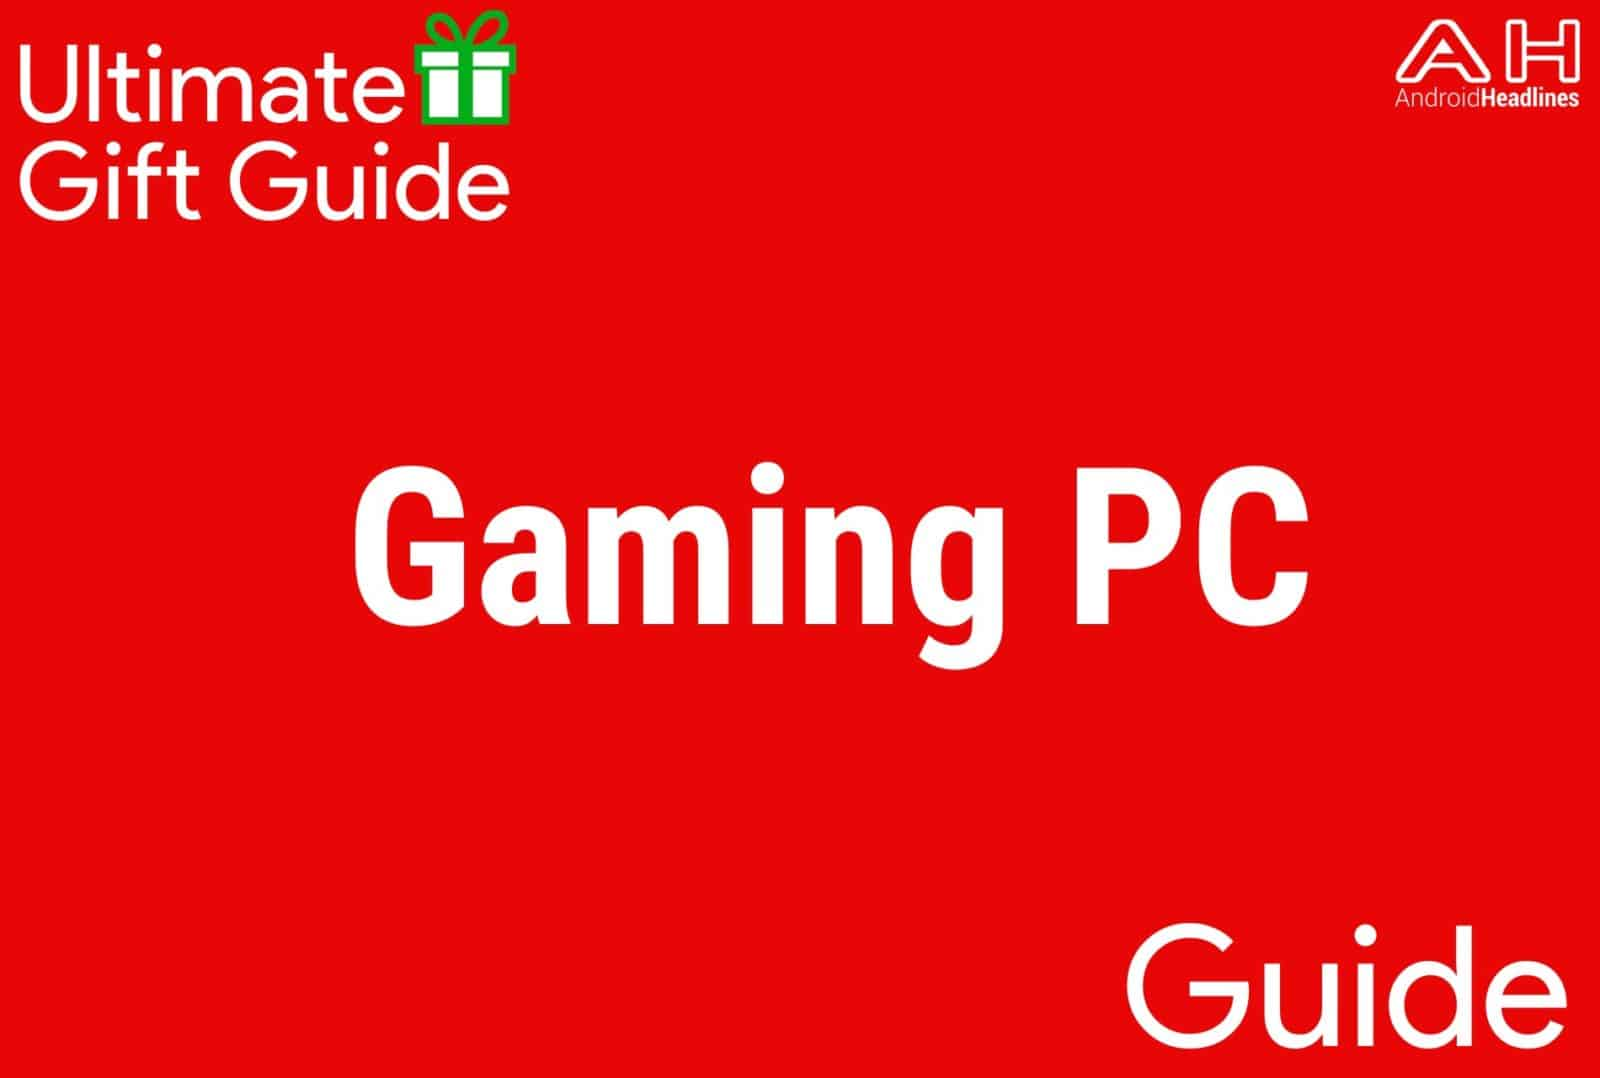 Gaming PC - Gift Guide 2015